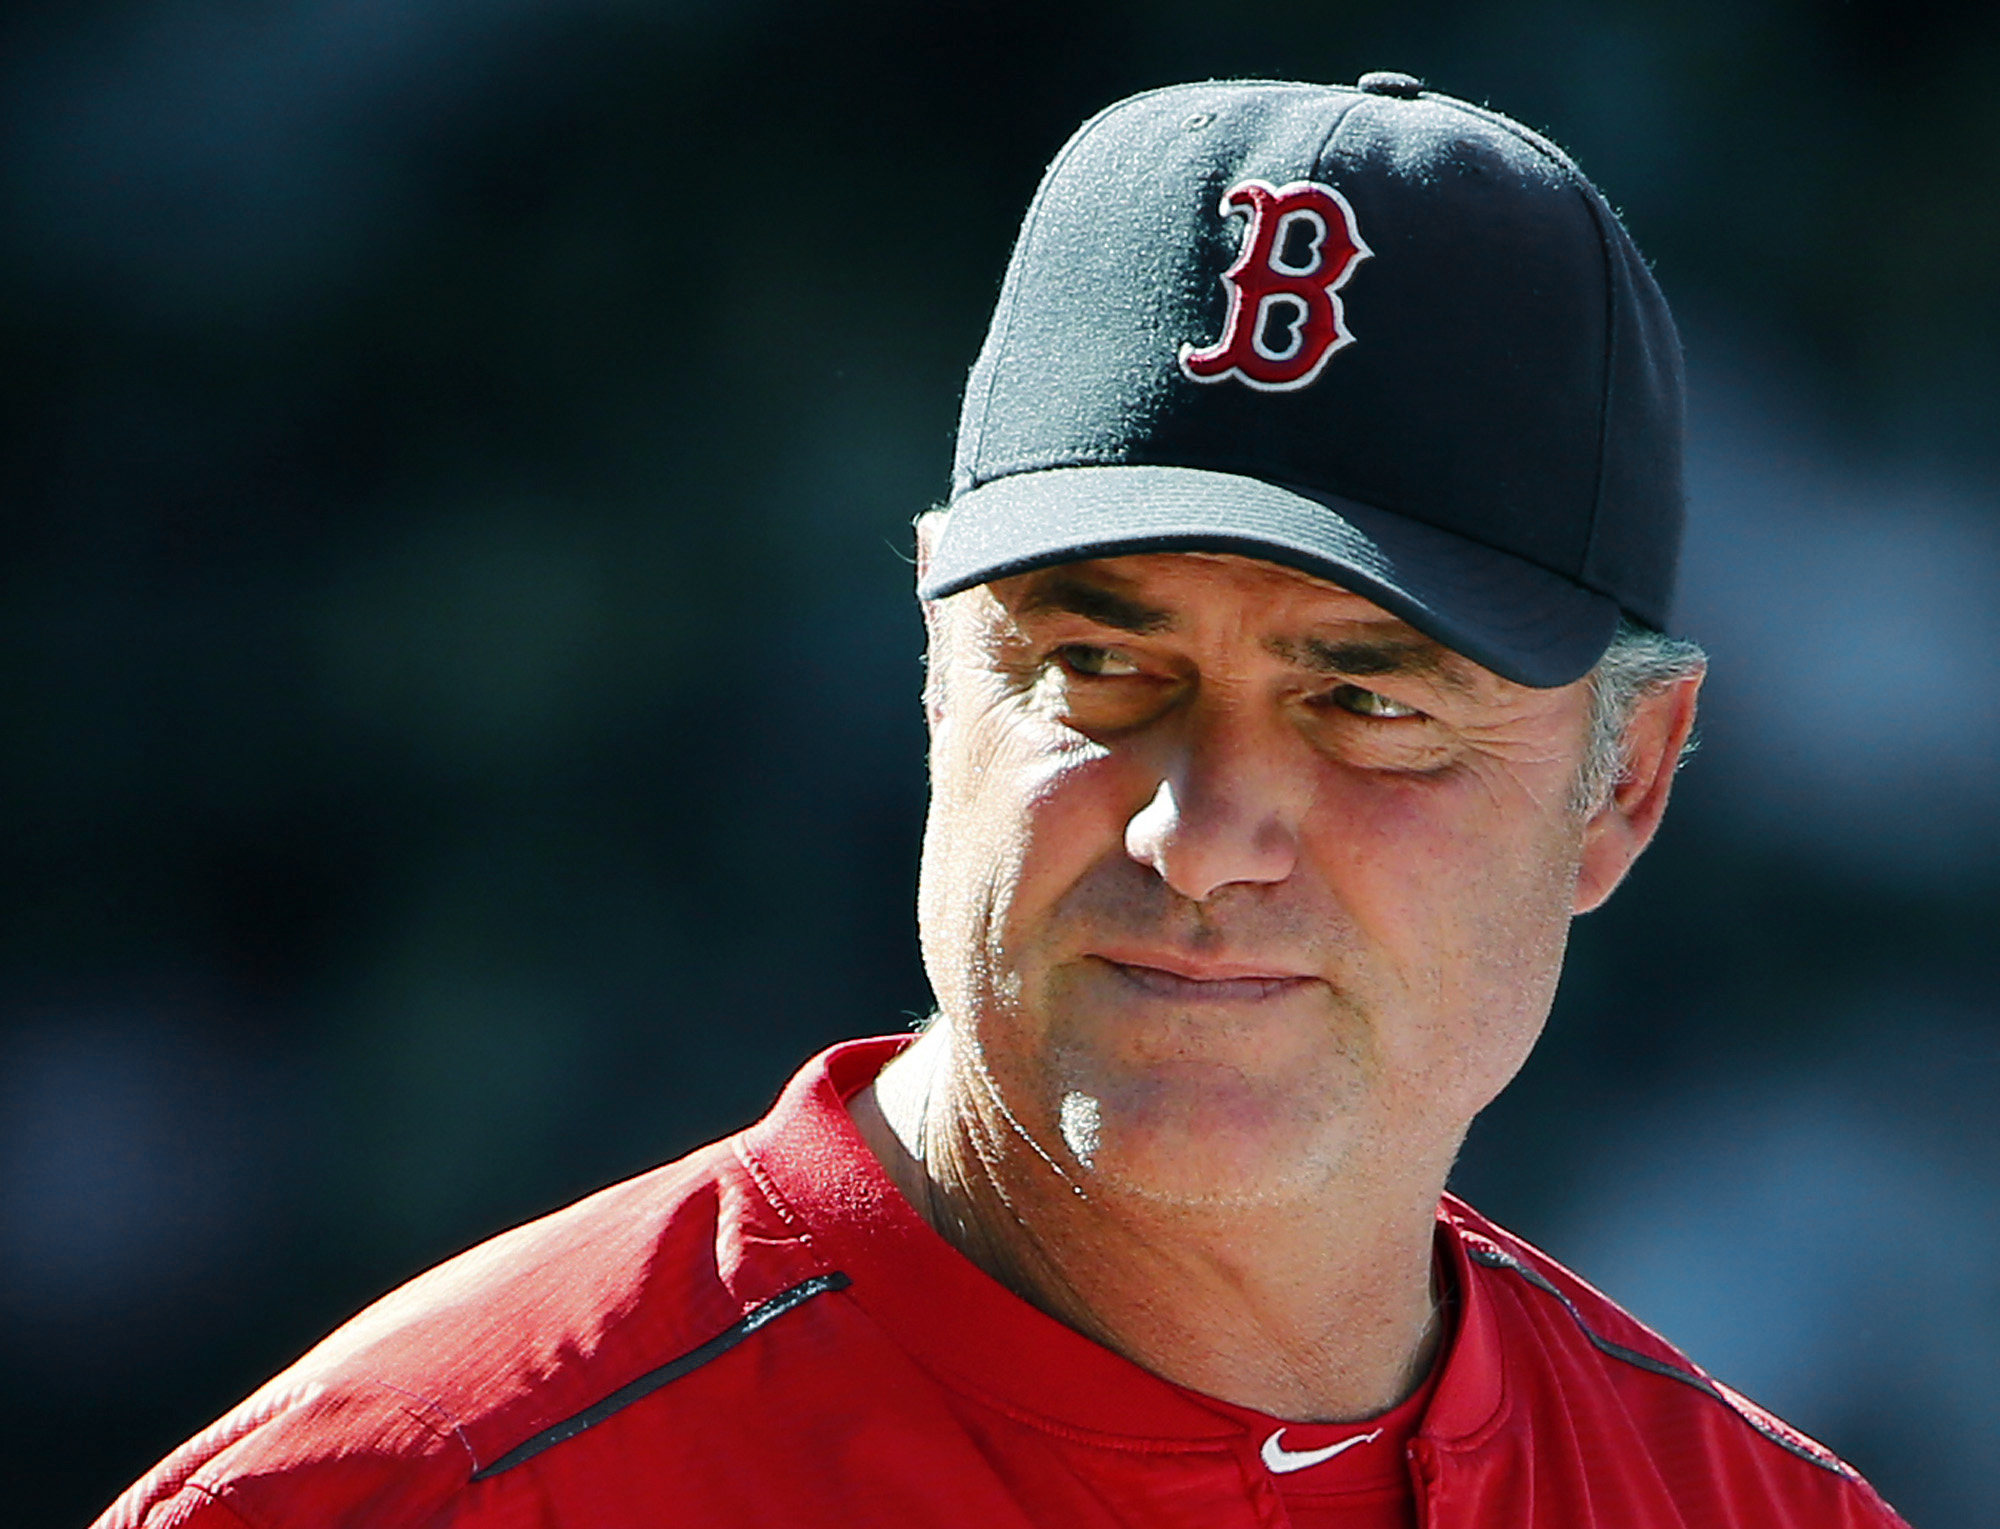 FILE - In this Aug. 2, 2015 file photo, Boston Red Sox manager John Farrell watches action during the eighth inning of a baseball game against the Tampa Bay Rays at Fenway Park in Boston. Farrell said Friday, Aug. 14, 2015, he would take a medical leave f